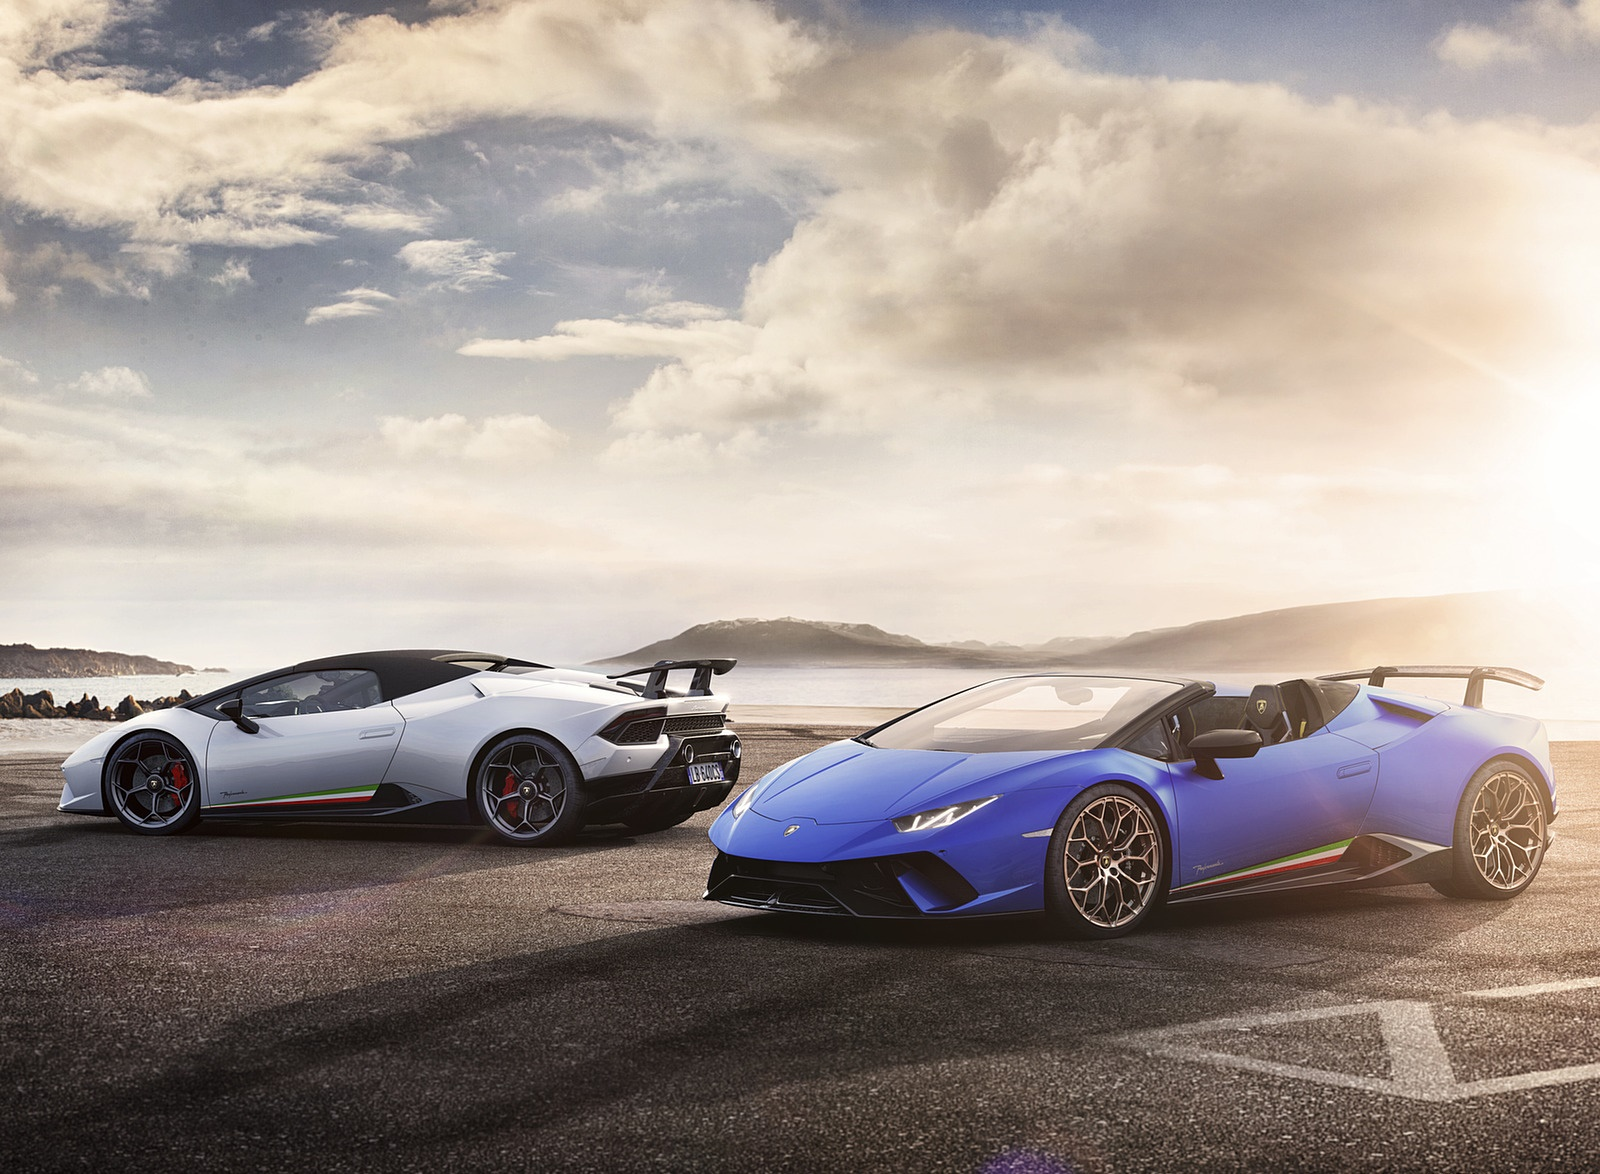 2019 Lamborghini Huracan Performante Spyder Wallpaper 57 Hd